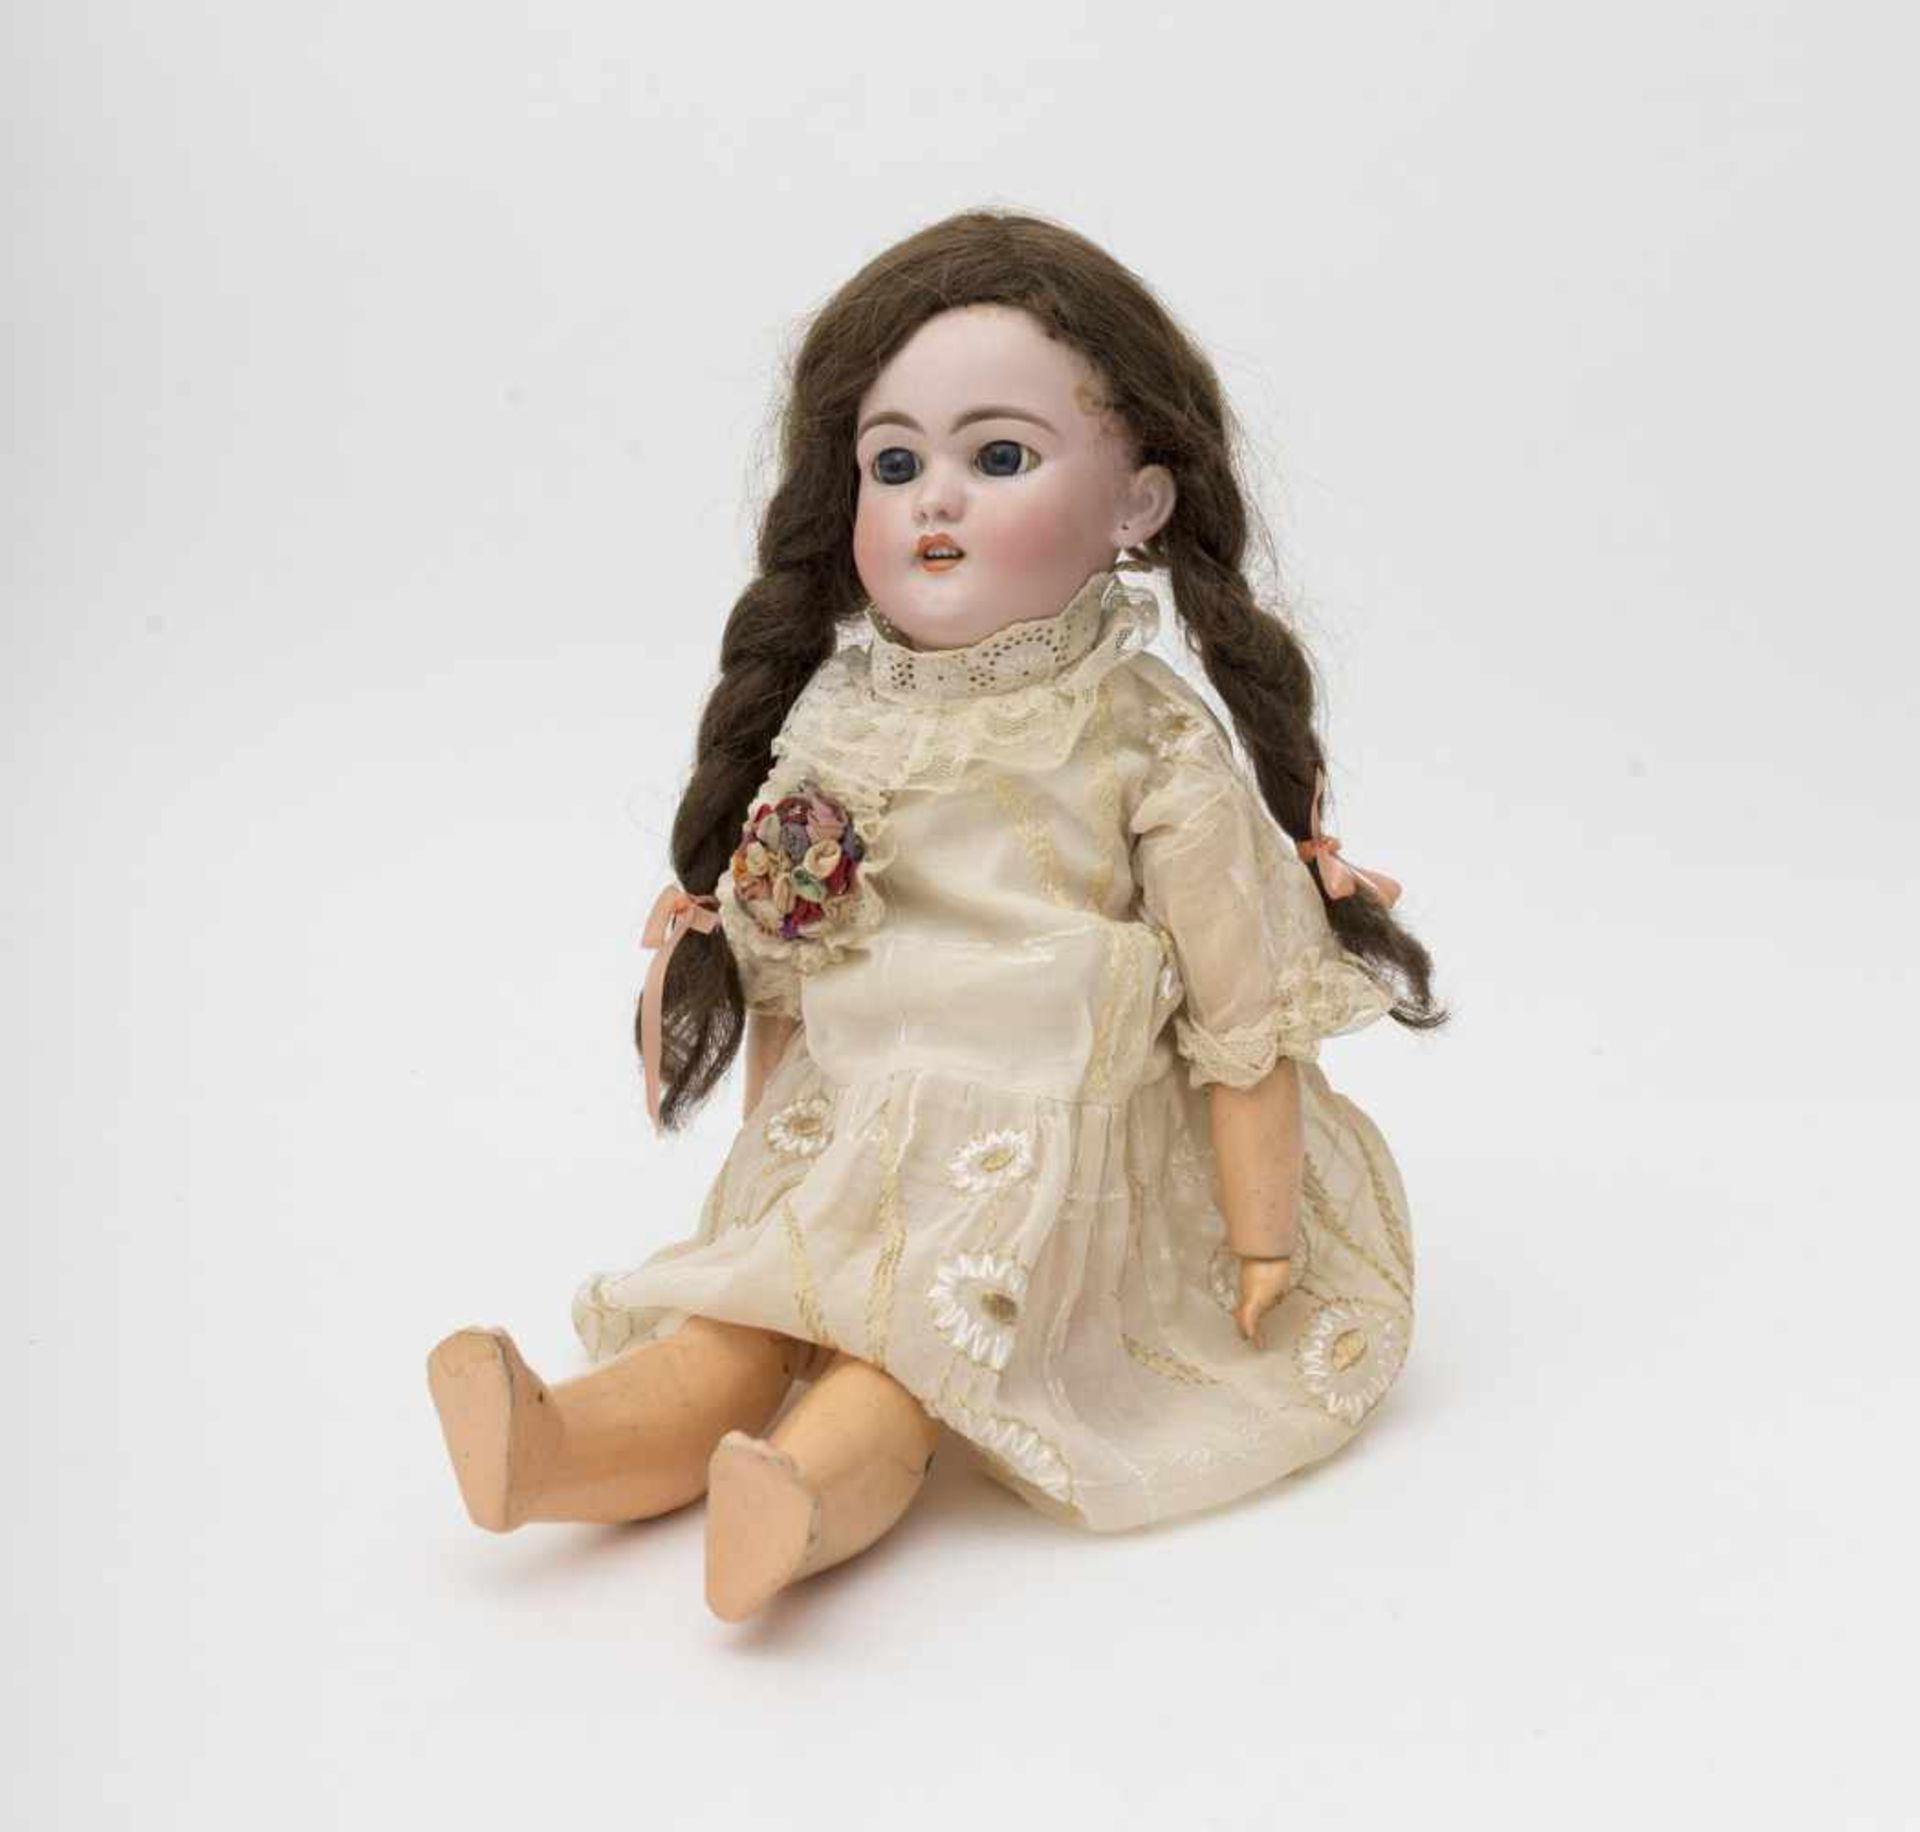 """German doll With biscuit head, open mouth, branded """"S & H 1079 DEP"""", size 8 ½, reattached blue eyes,"""